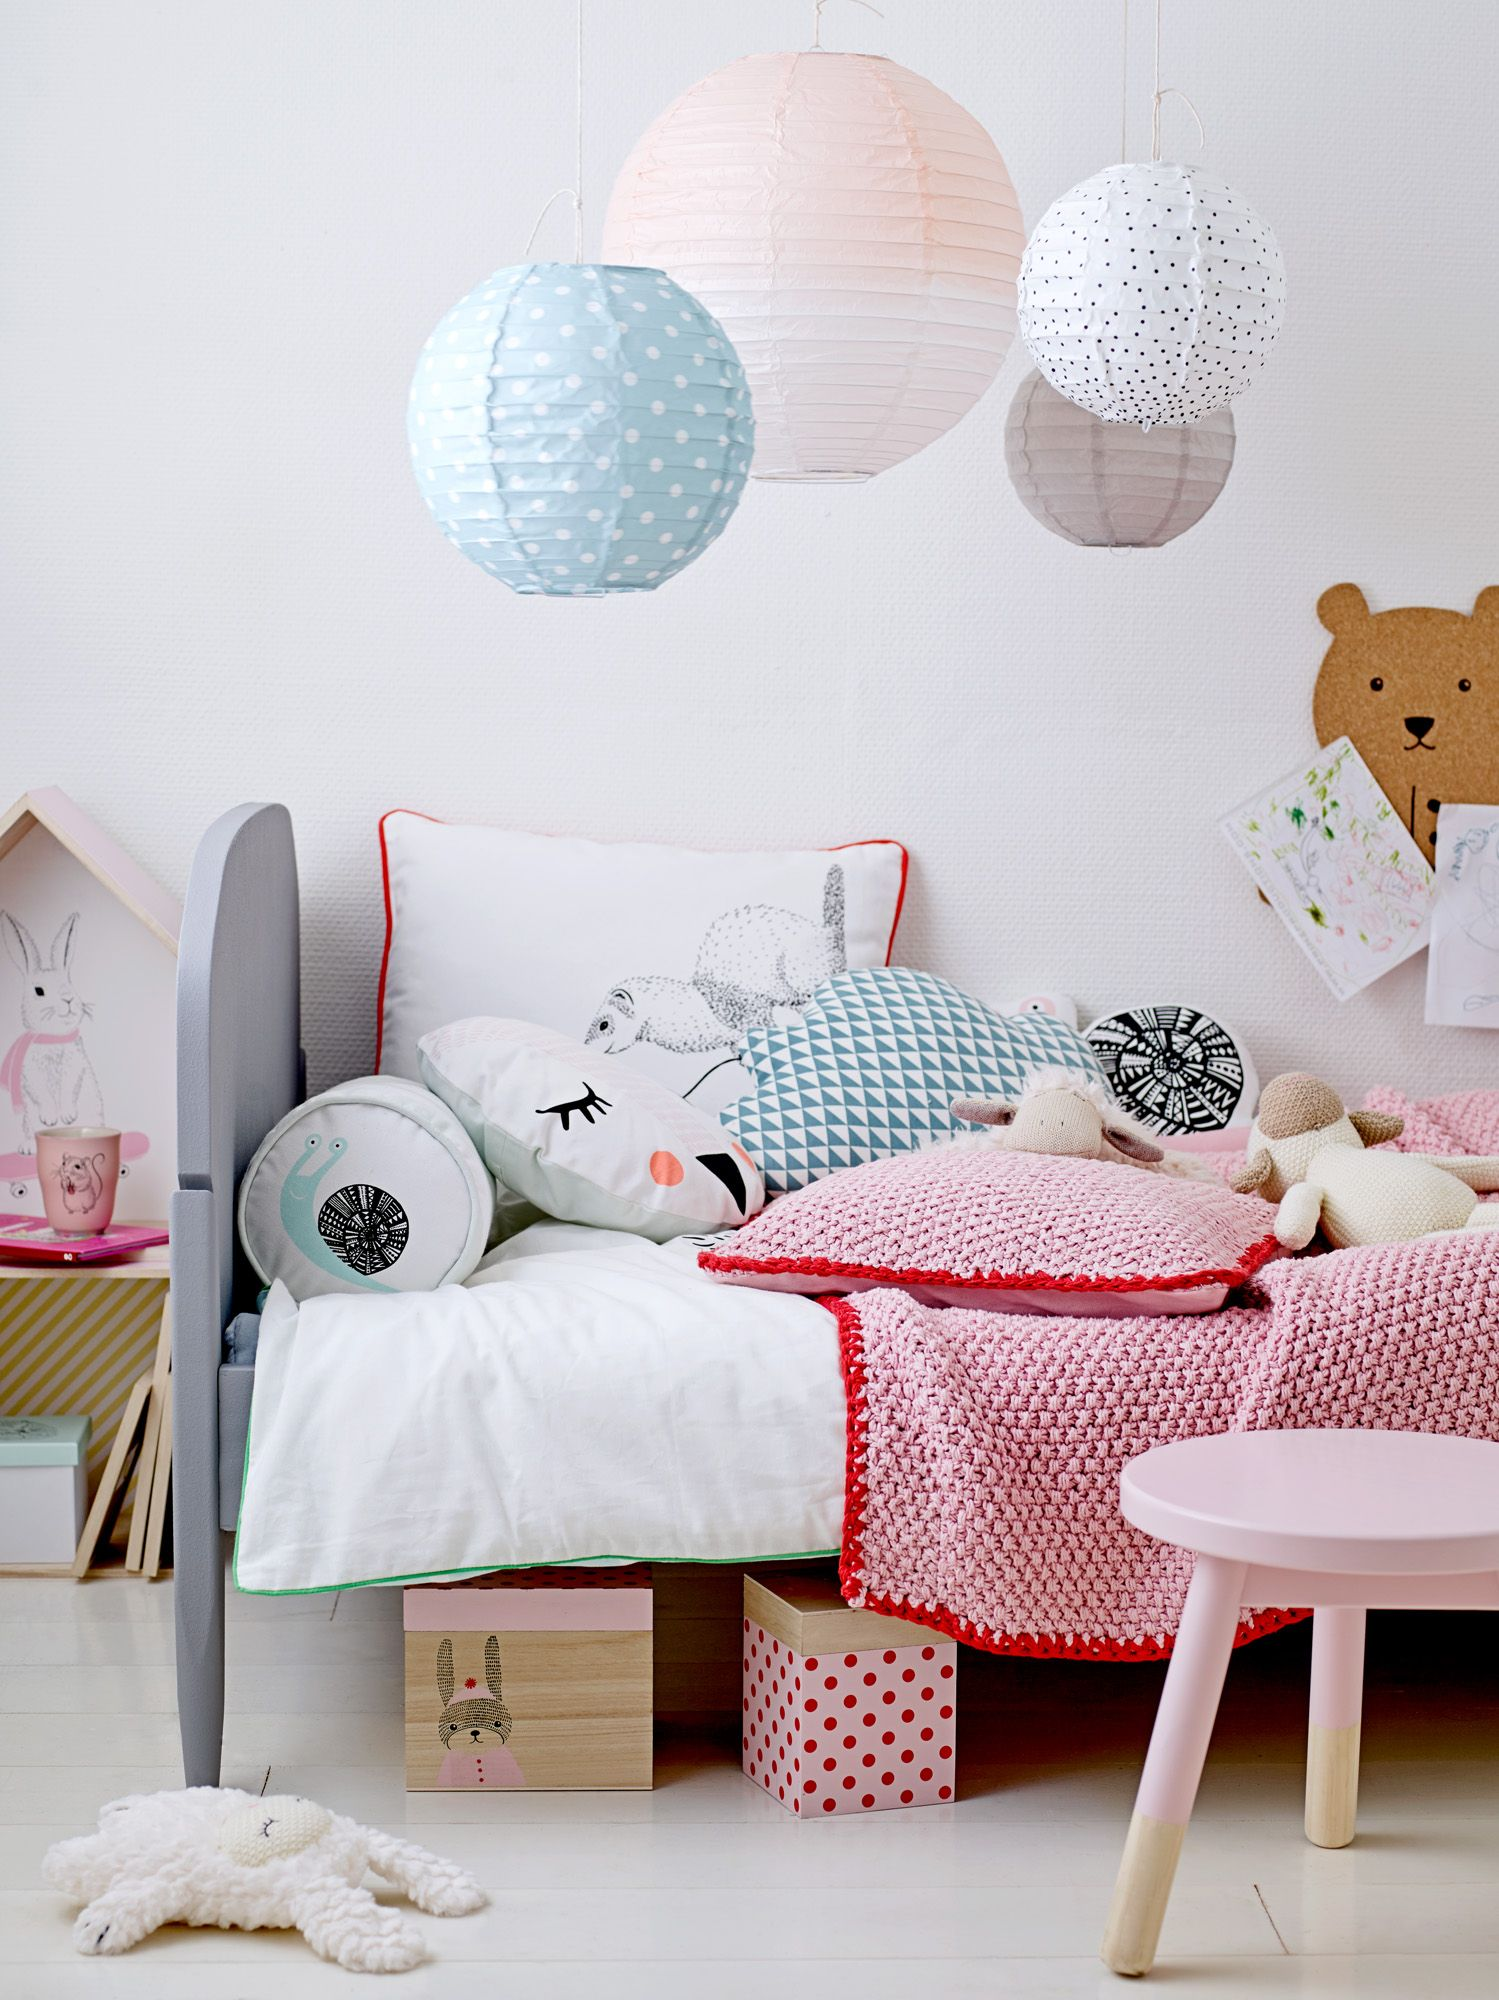 pin von christiane schulz auf kinderzimmer pinterest kinderzimmer kinder und kinderzimmer ideen. Black Bedroom Furniture Sets. Home Design Ideas